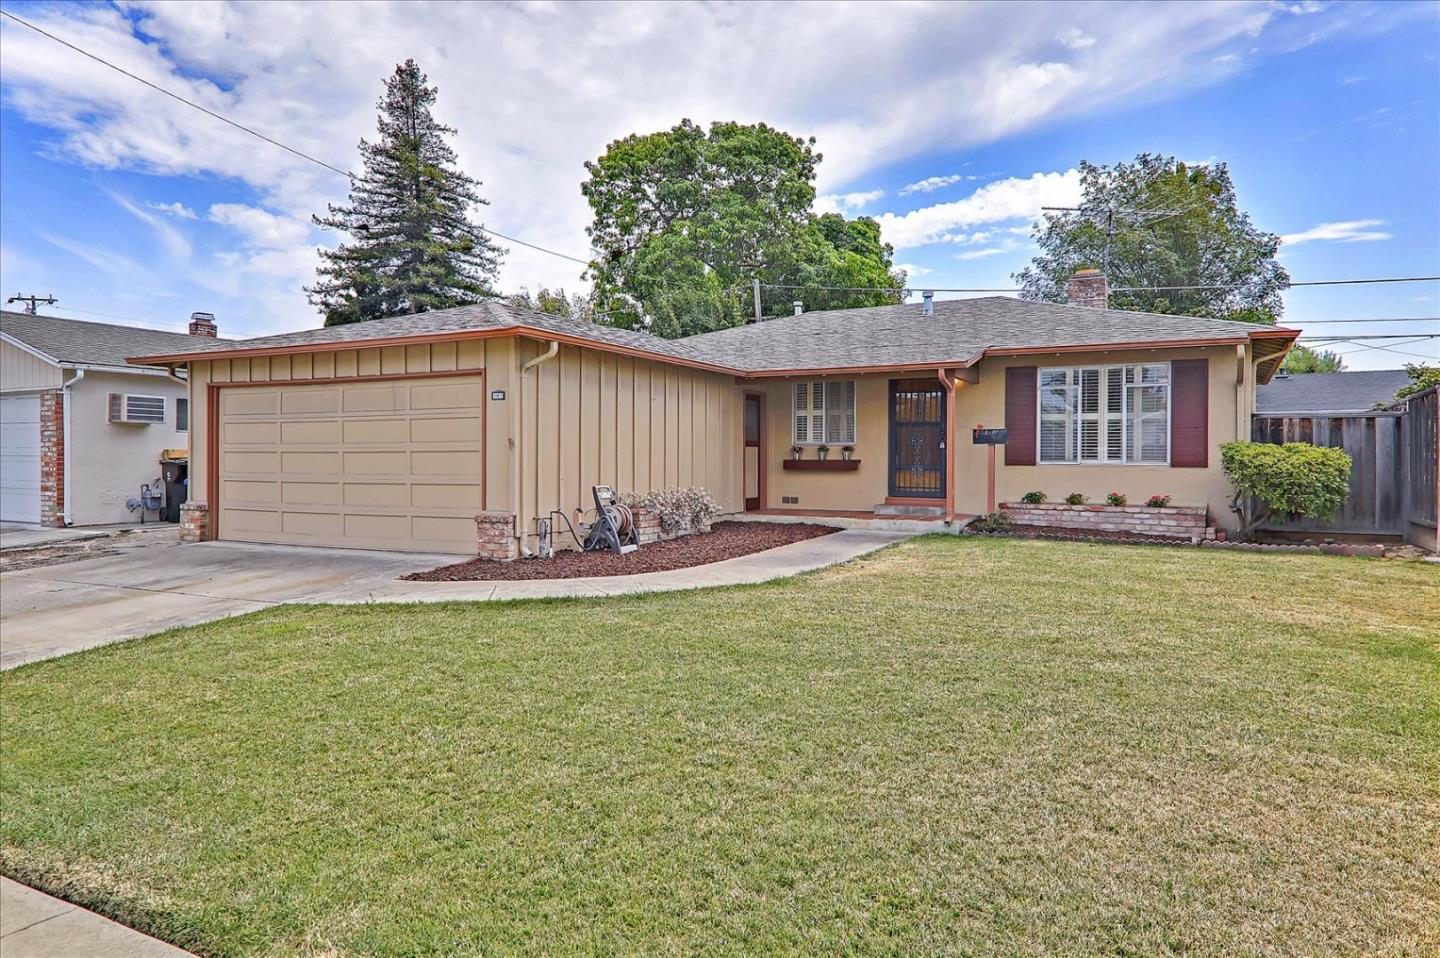 Come see this amazing three bedroom, two bath home in the Sundale neighborhood of Fremont. This house offers newly refinished hardwood floors, new interior paint and a master suite. You'll love to entertain on the big back patio. This is a place that anyone would love to call home!